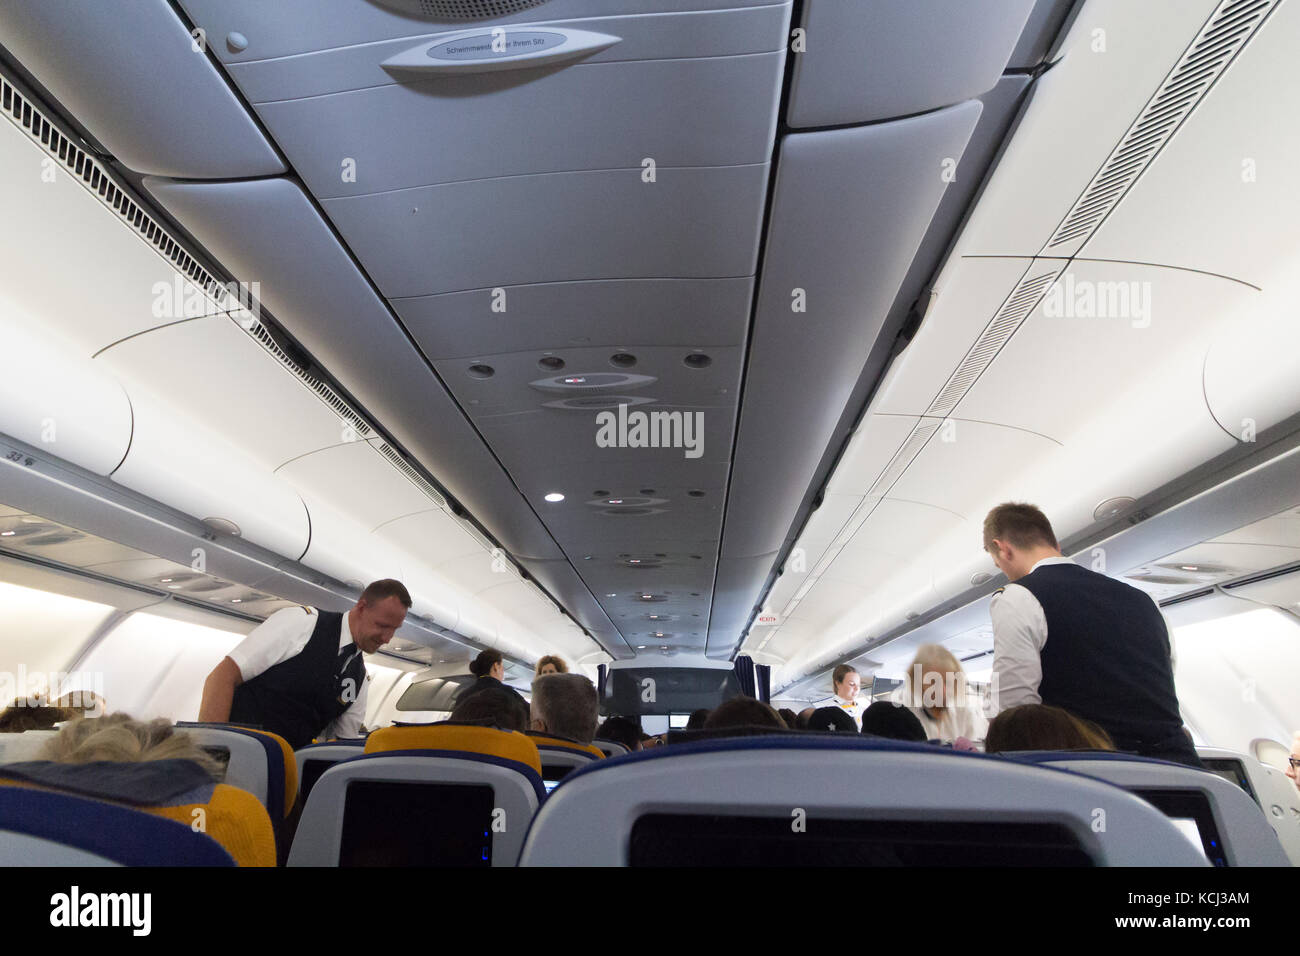 Munich, Germany - September 21th, 2017: Cabin crew is checking over the seatbelts before take off, Economy class, - Stock Image